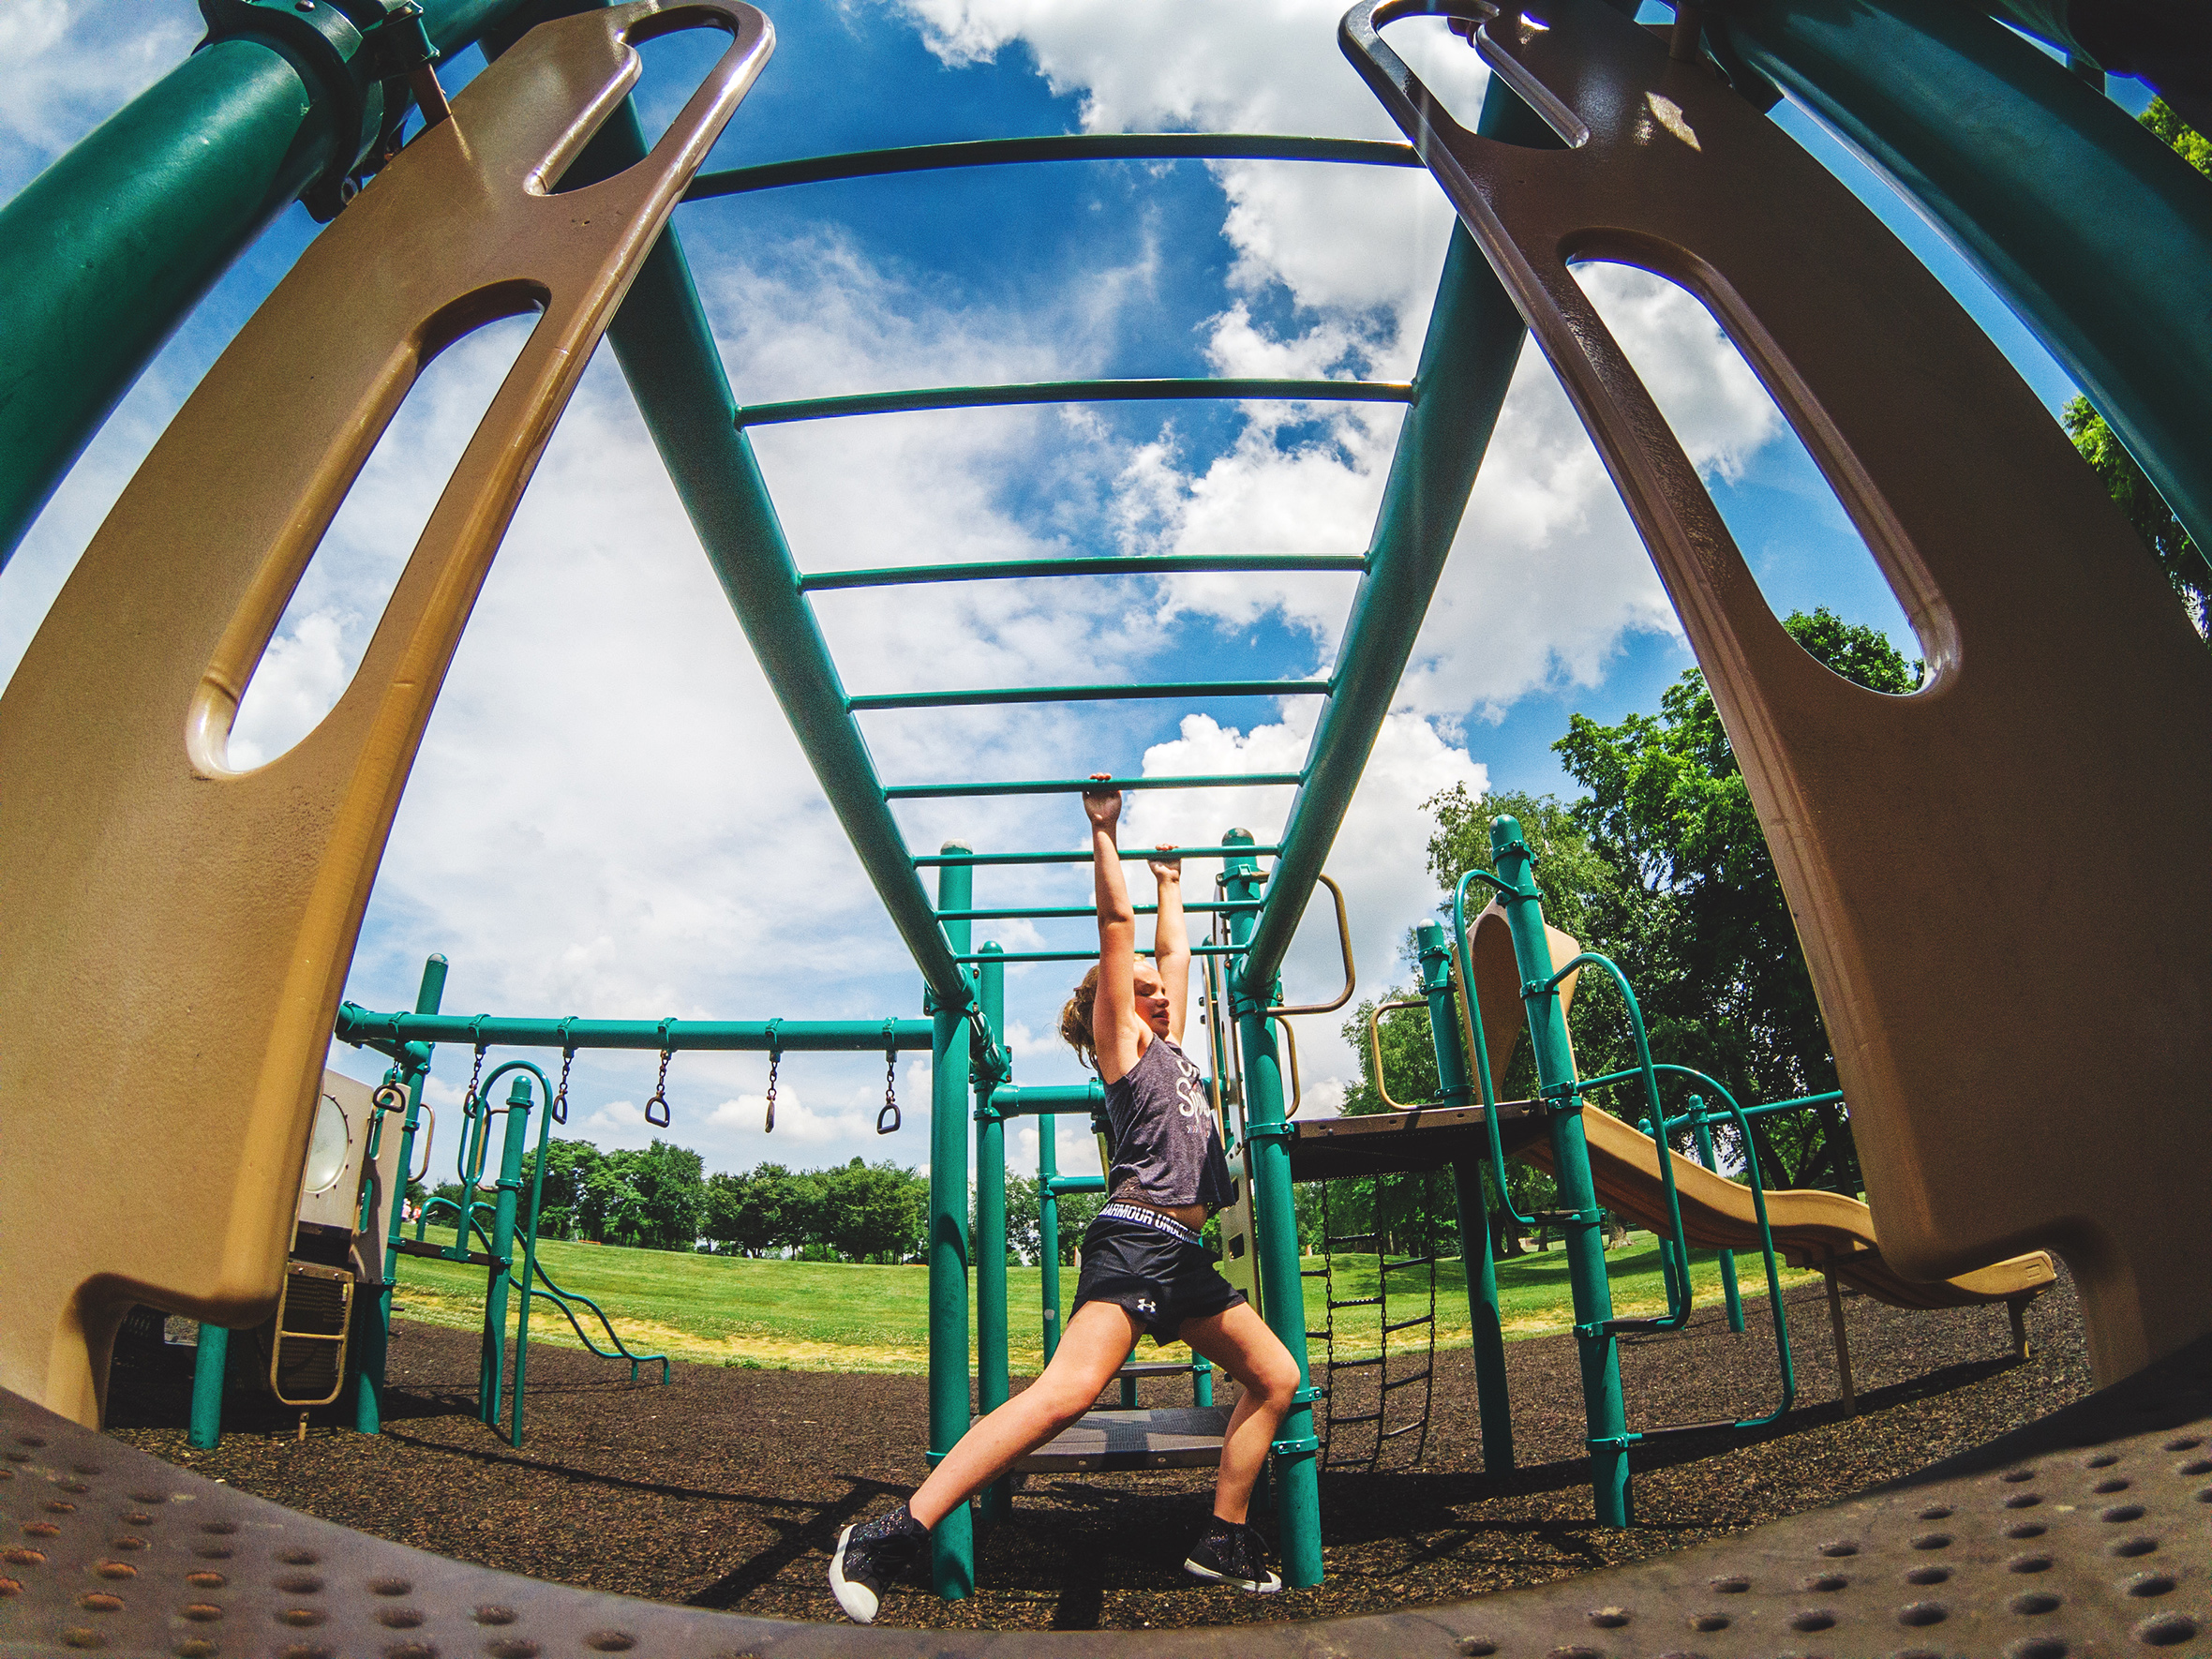 go pro, lifestyle kid, children, monkey bars, summertime playing